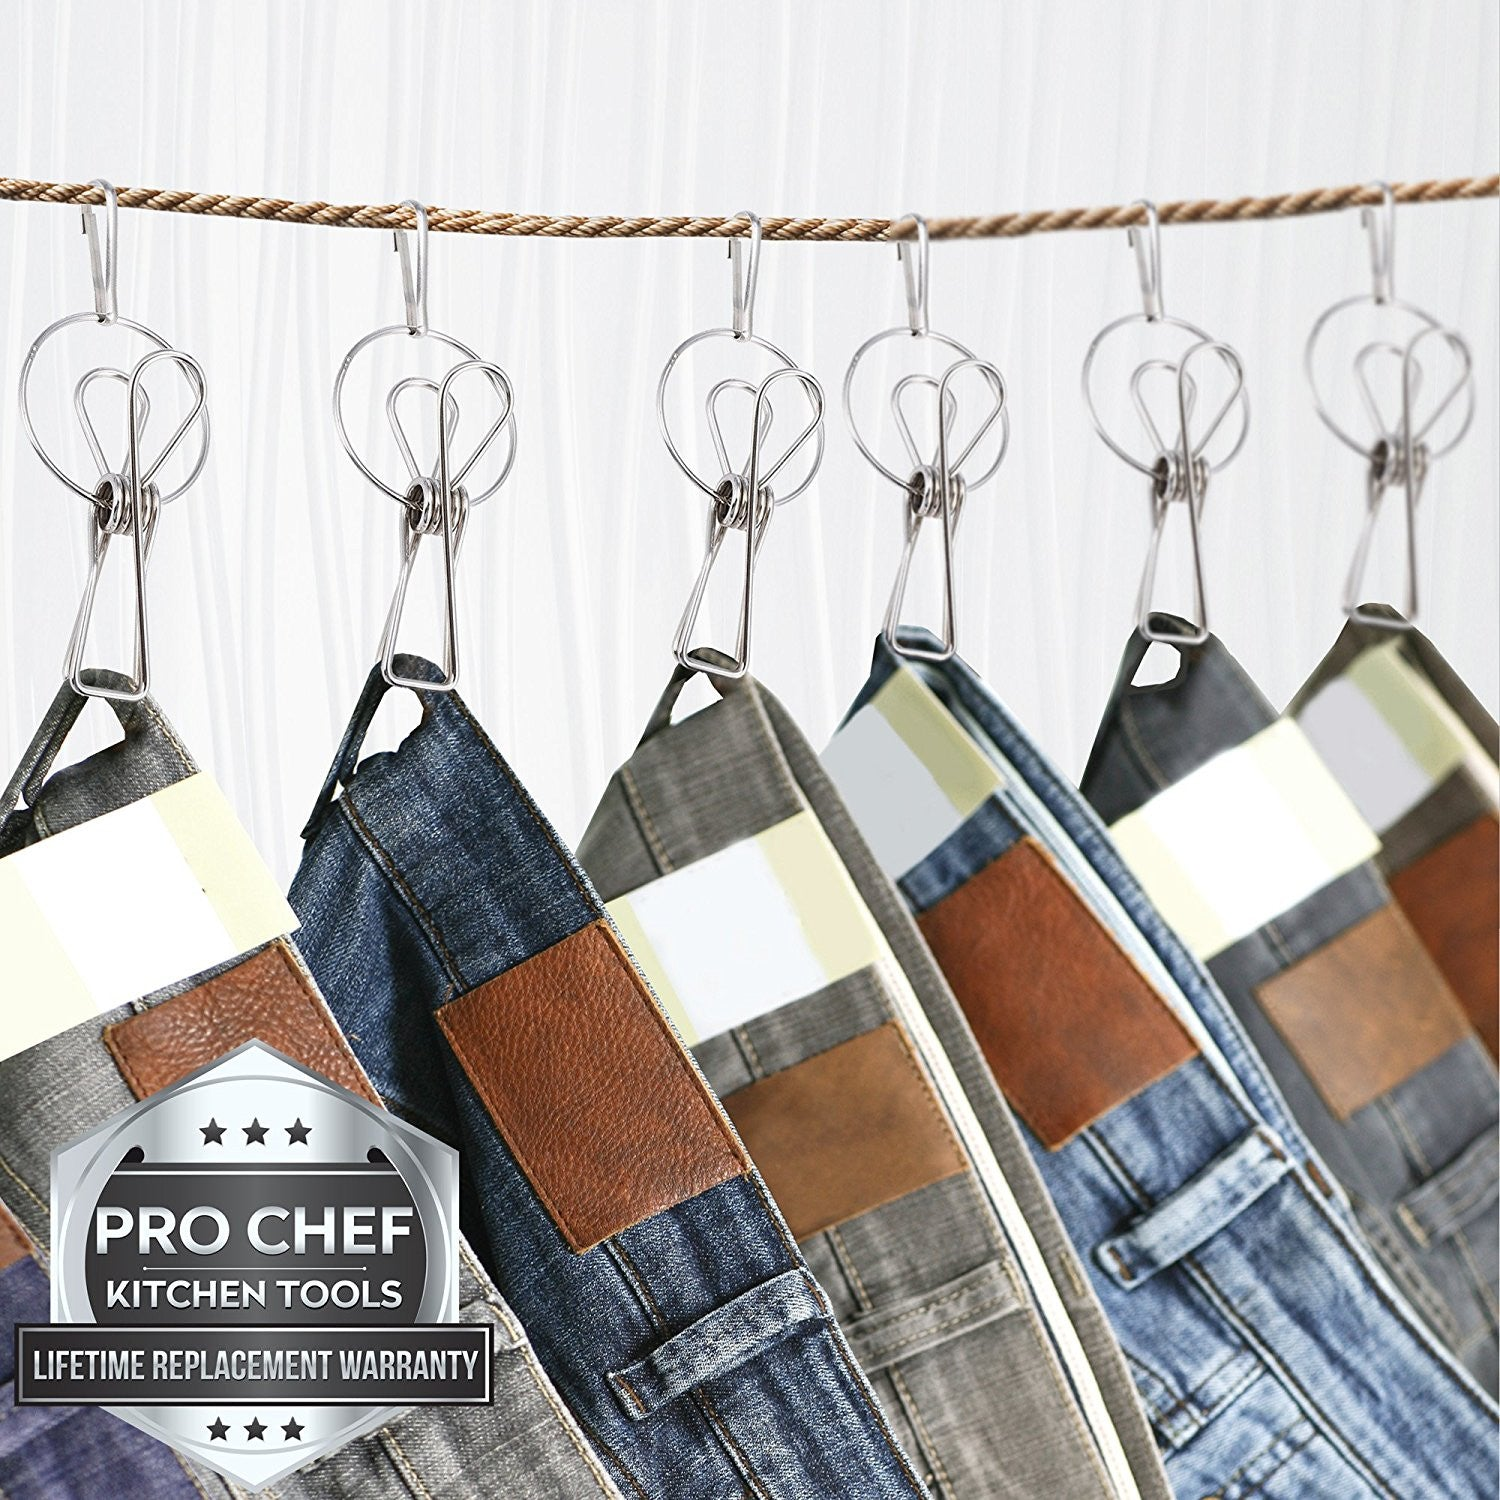 Hanger Clips - Laundry Clothes Pins - Metal Hanging Drying Rack